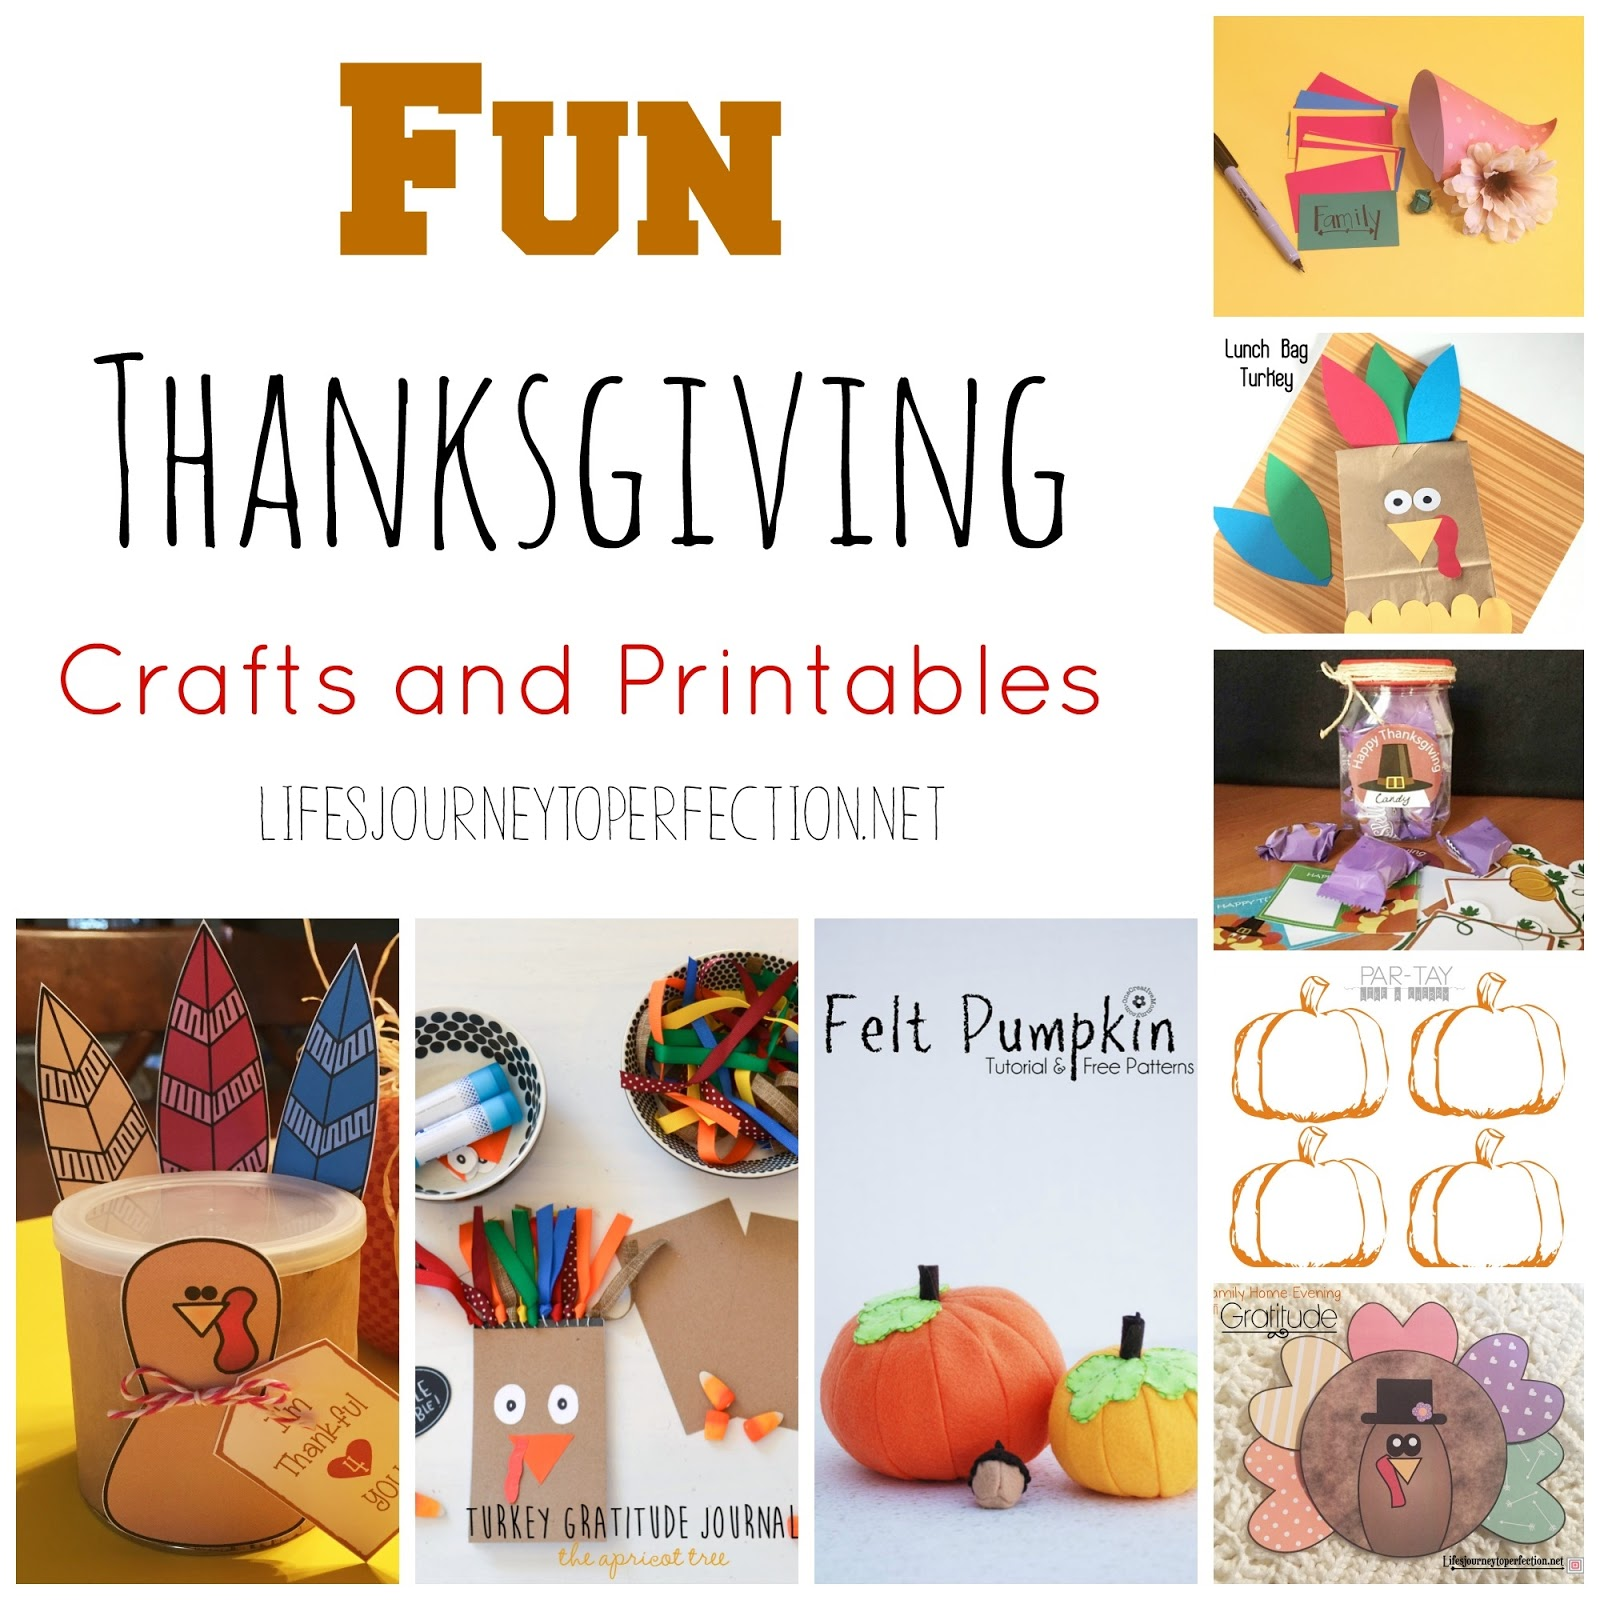 Life\'s Journey To Perfection: Fun Thanksgiving Crafts and Printables